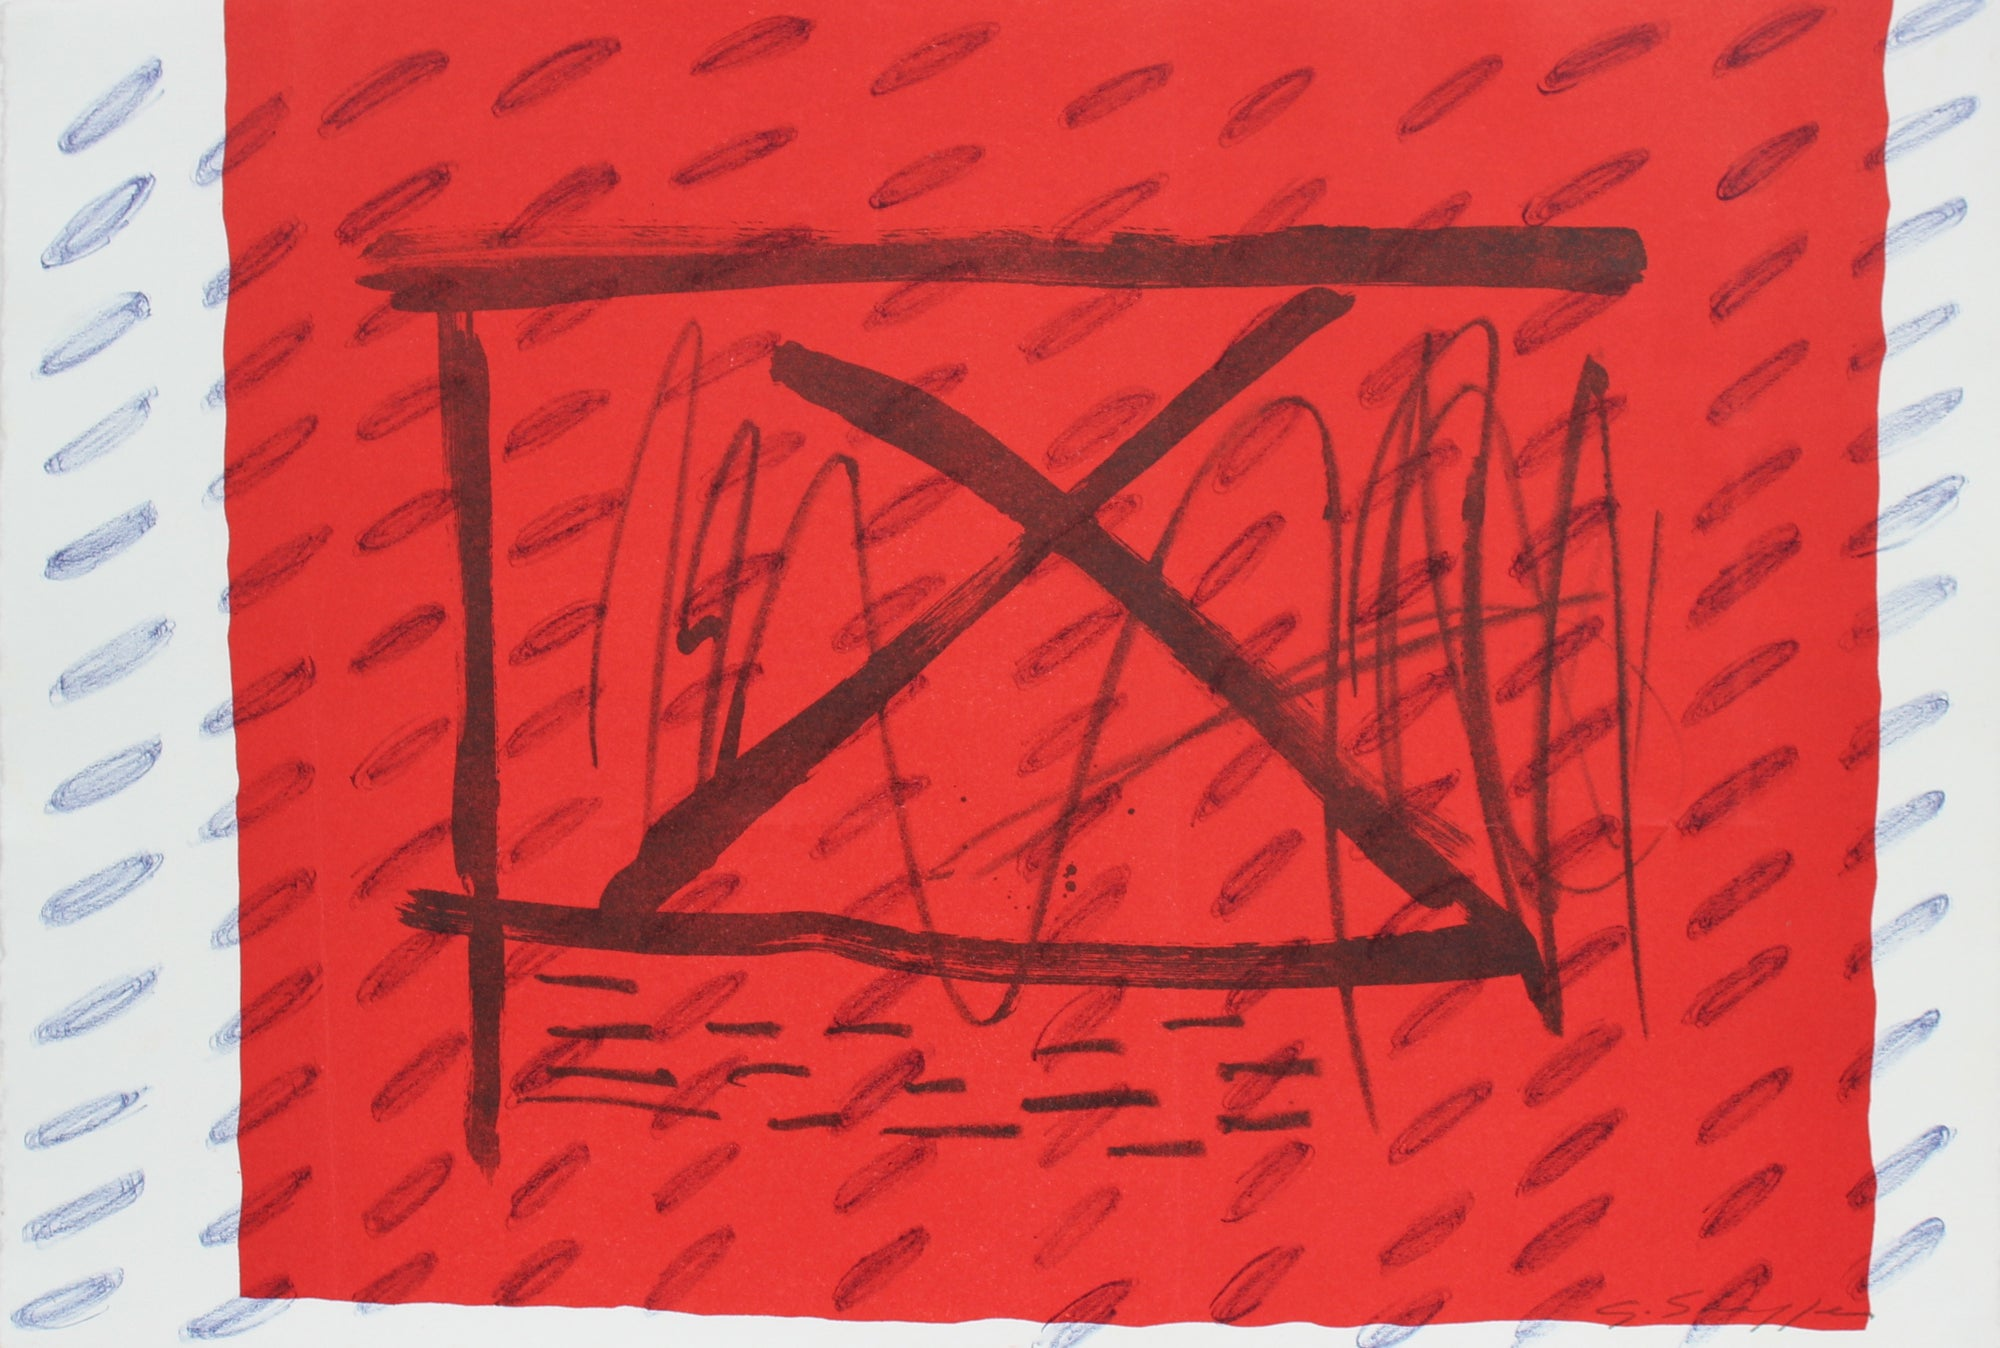 Abstracted Window <br>1999 Lithograph <br><br>#96833